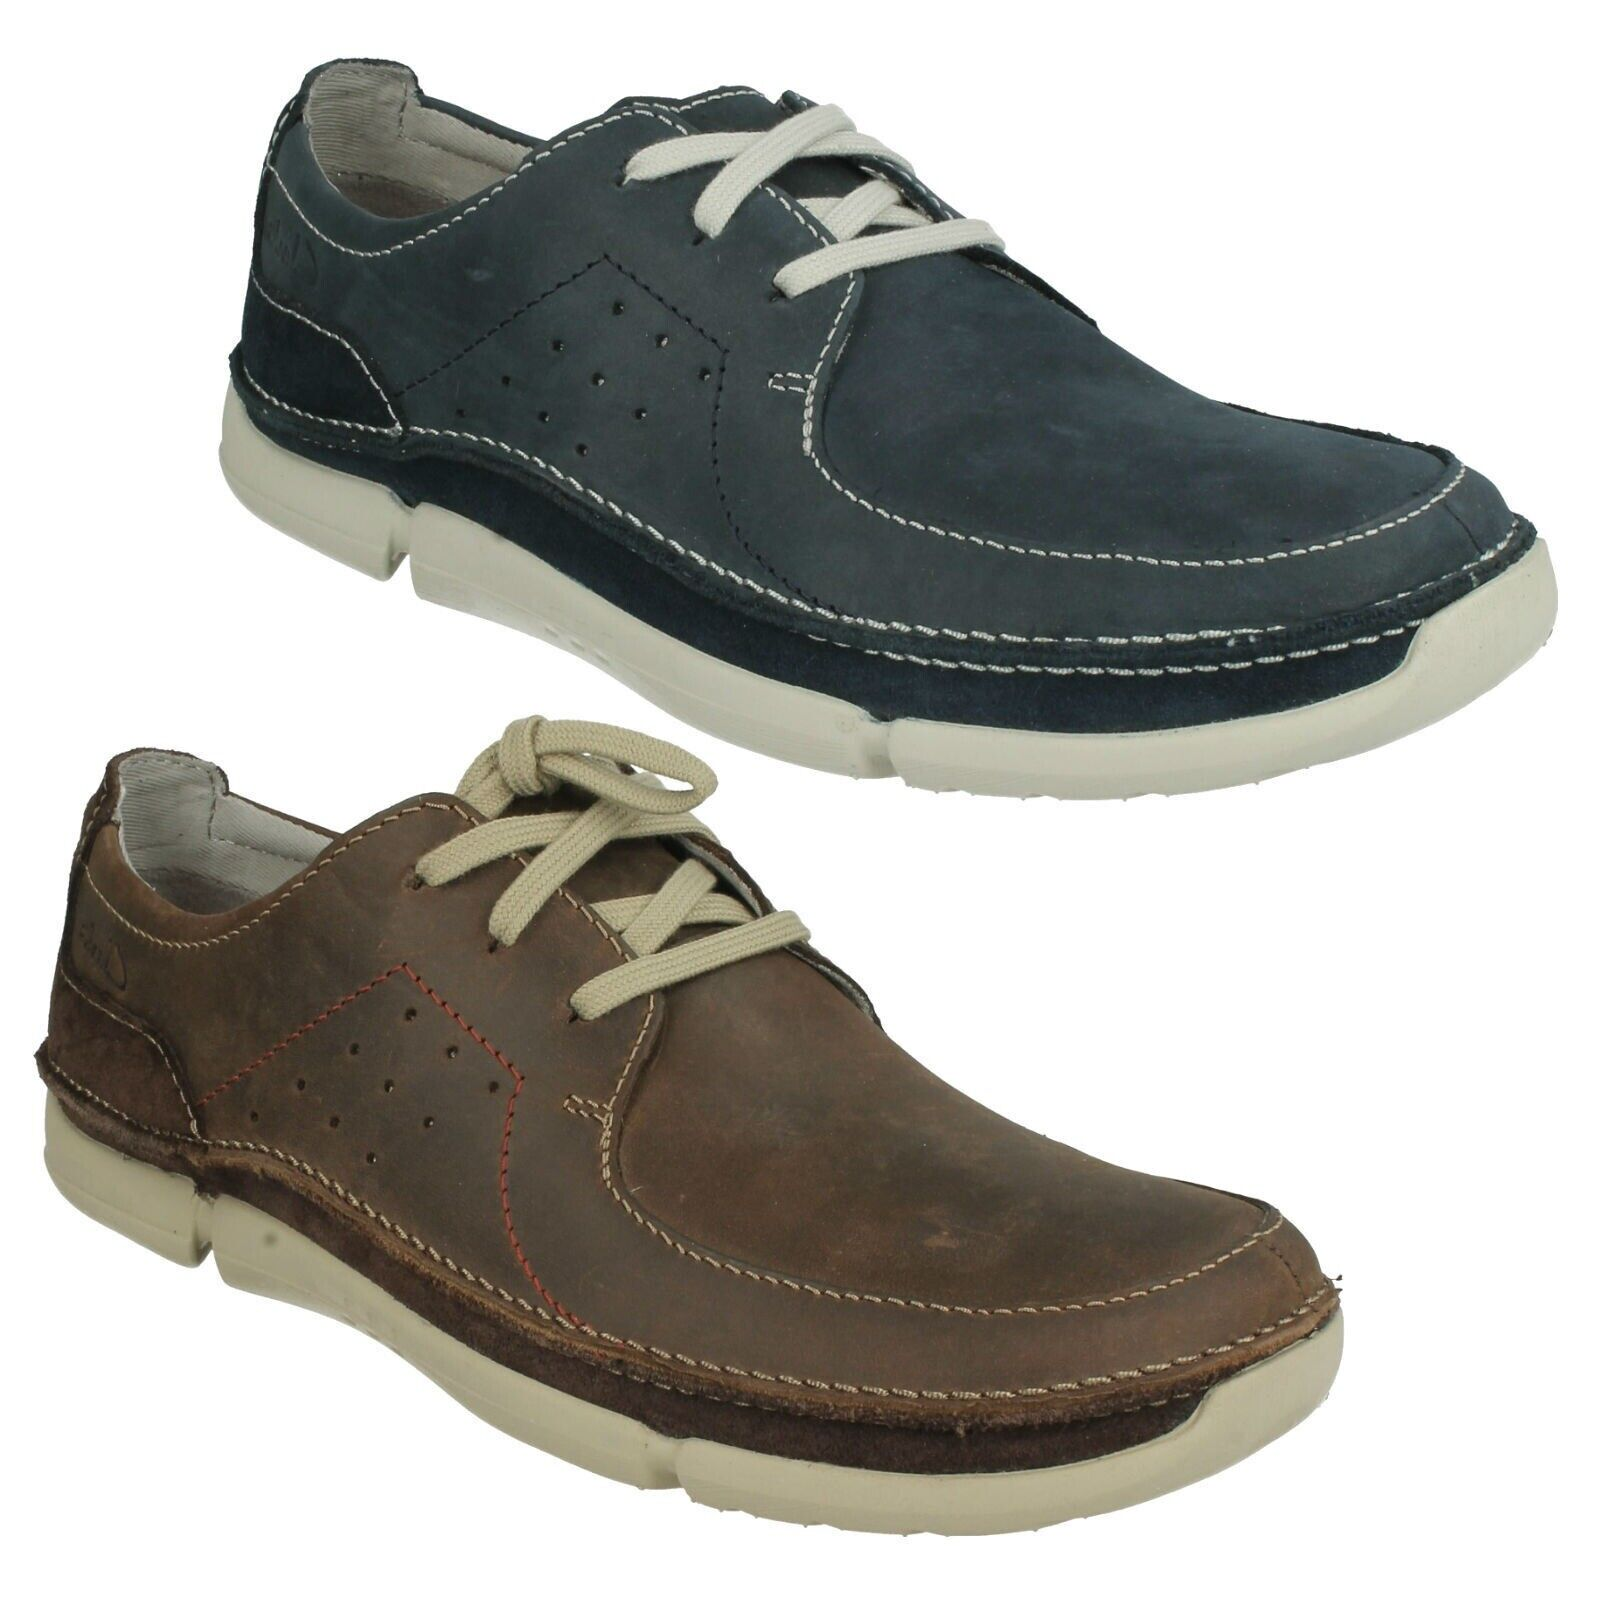 TRIKEYON FLY MENS CLARKS LIGHTWEIGHT CASUAL LACE UP LEATHER schuhe TRAINERS